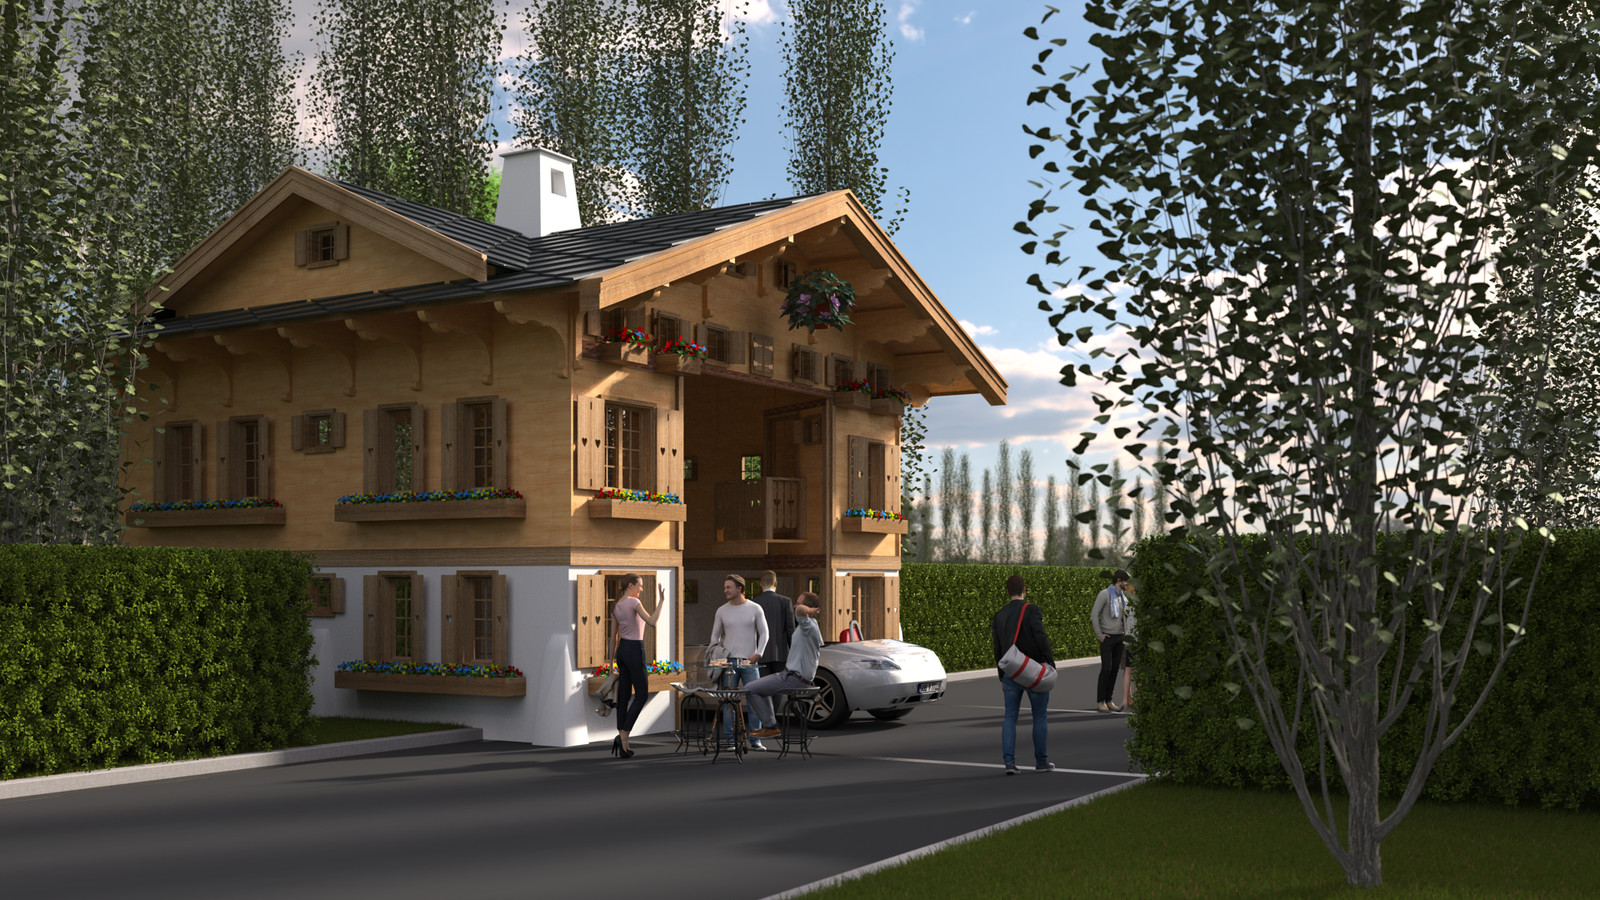 SketchUp 2018 + Thea Render  La Grange work-Scene 59 2pt Doors open Maxi sized Traditional Swiss Chalet Event Build  HDR by HDRI-SKIES found here: http://hdri-skies.com/shop/hdri-sky-208/